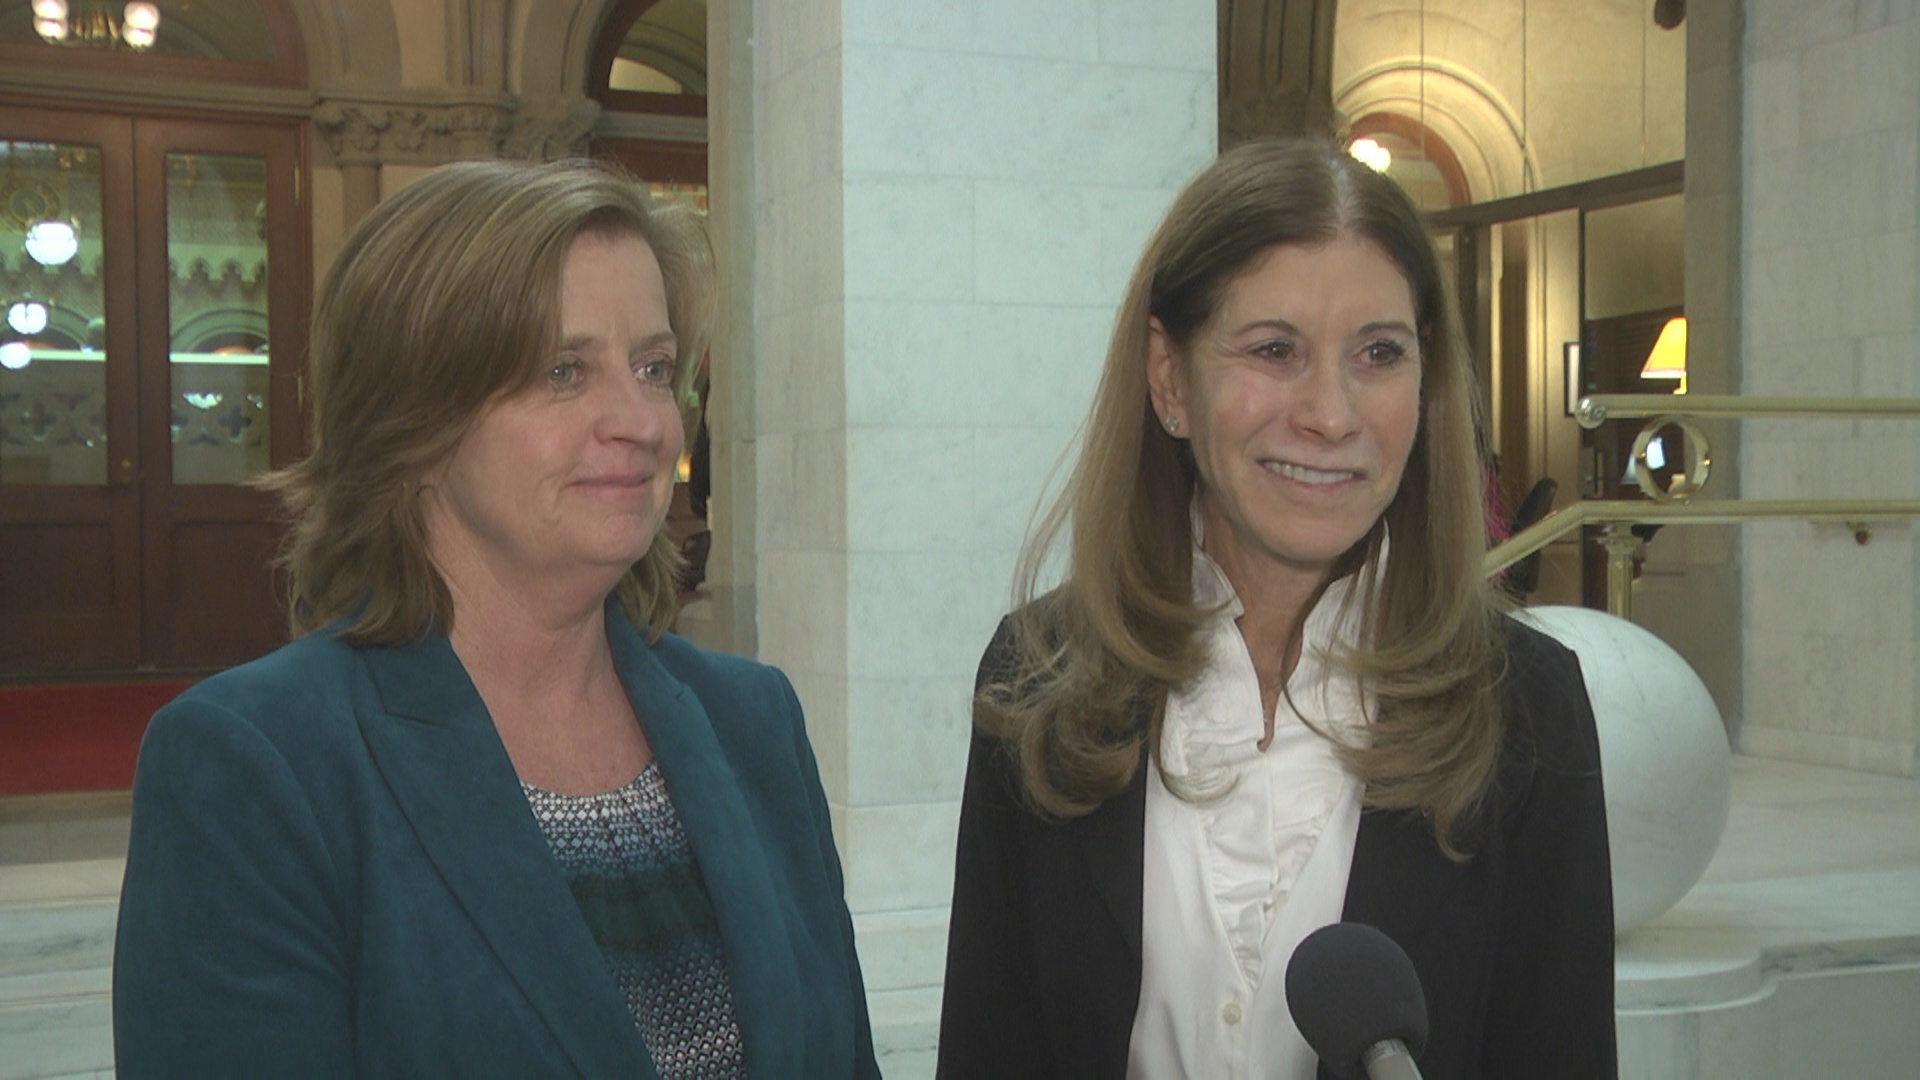 Linda Beigal Schulman Joins Assemblywoman Griffin In Fight Against Gun Violence